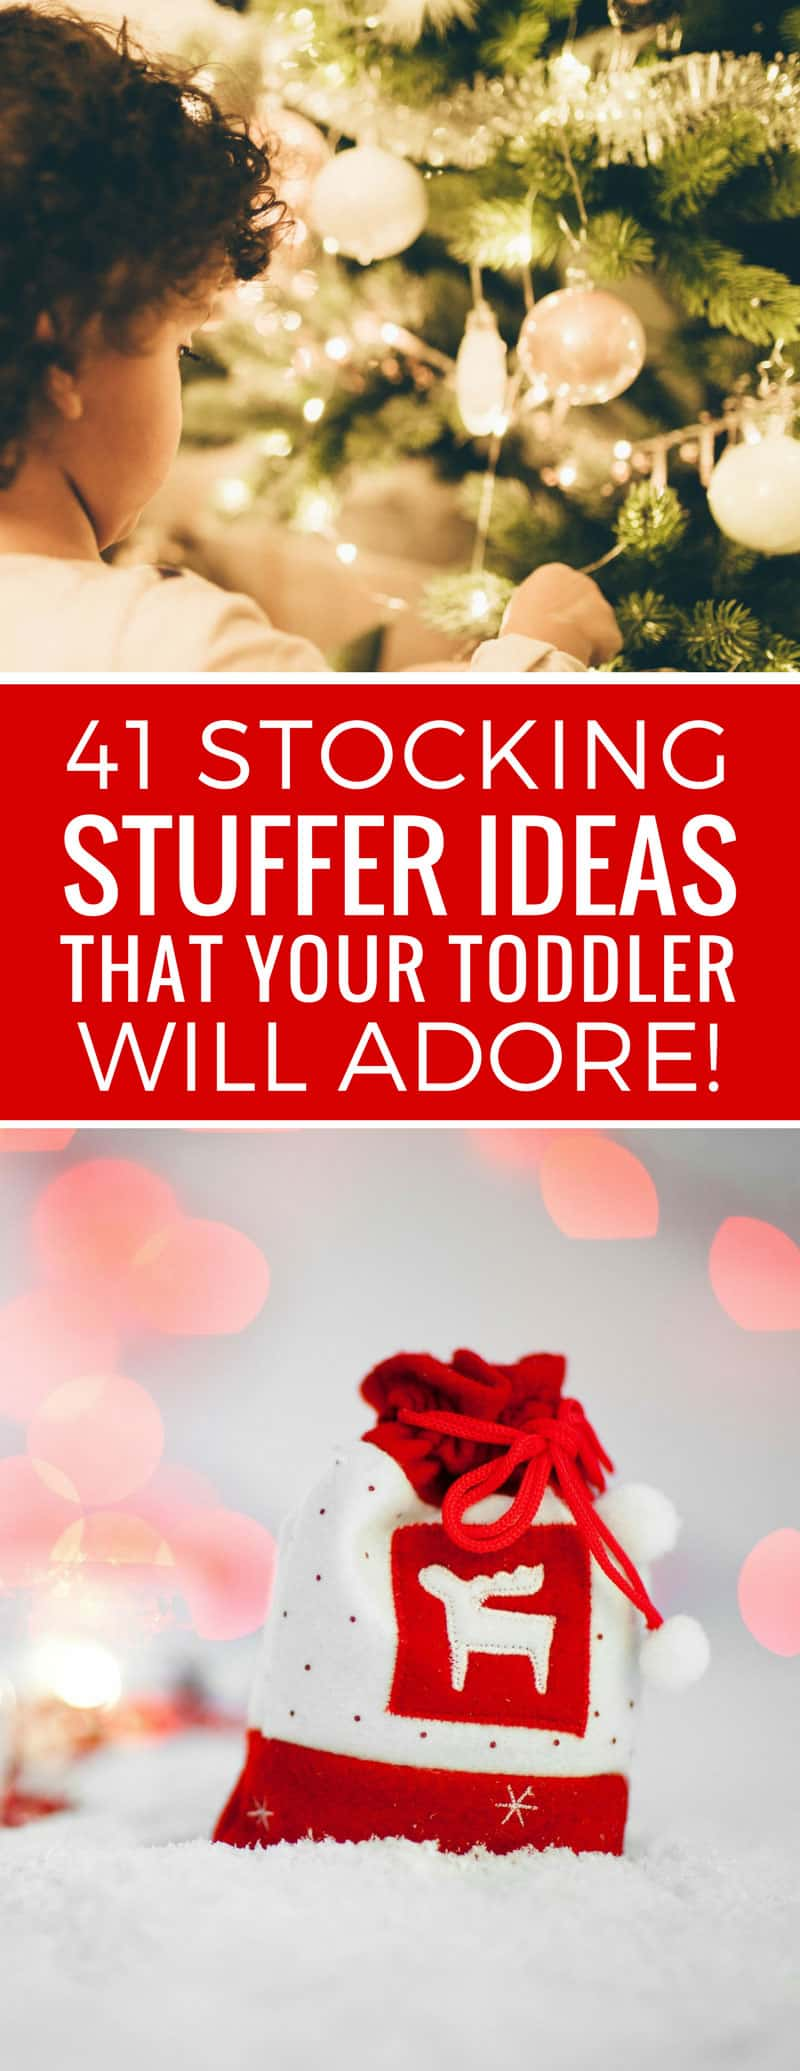 Loving this list of stocking stuffers for toddlers - the perfect way to start Christmas Day! Thanks for sharing!